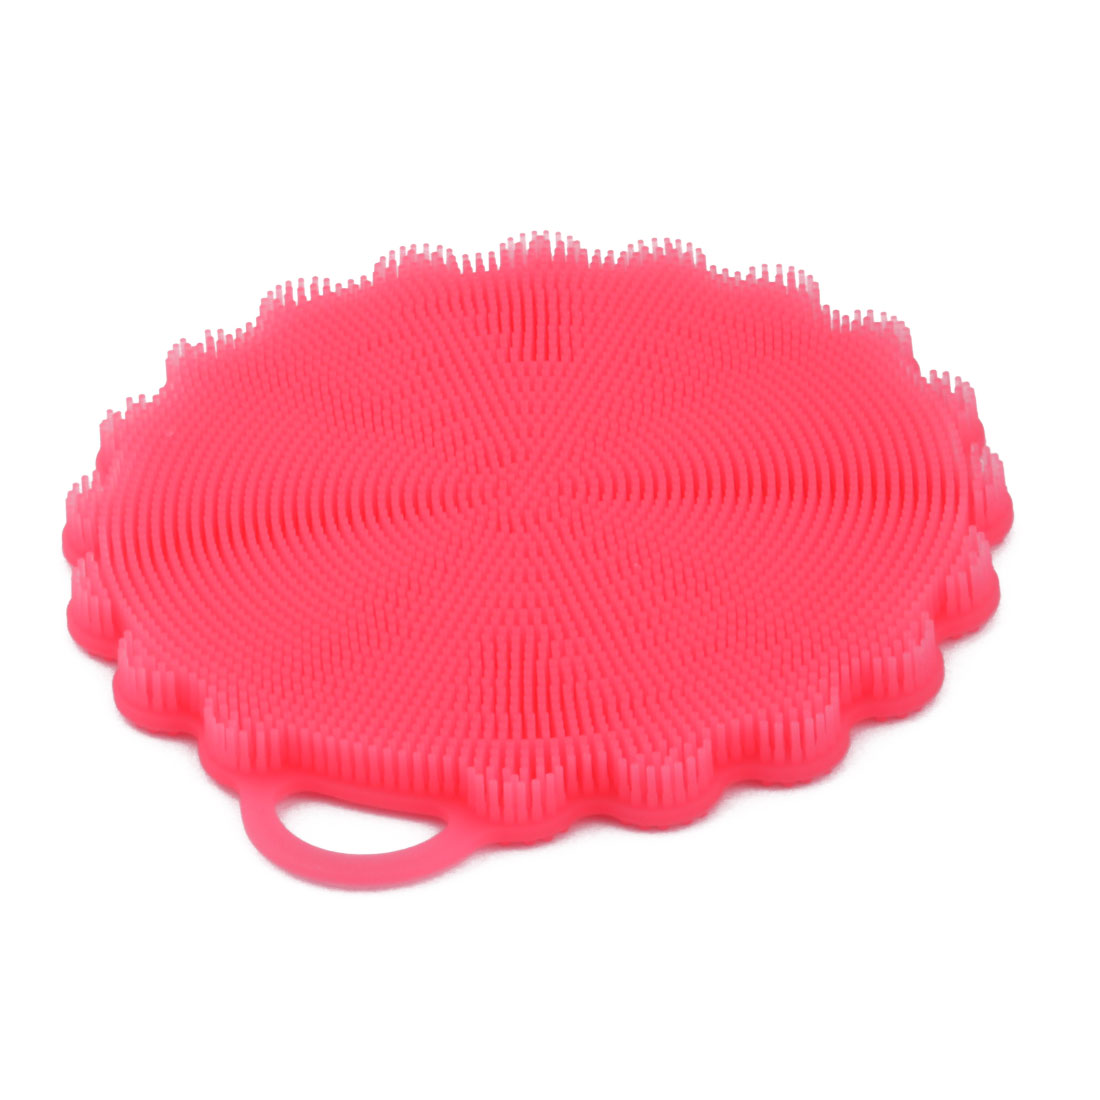 Household Kitchen Silicone Flower Shaped Spoon Washing Cleaning Brush Pad Red - image 4 of 4